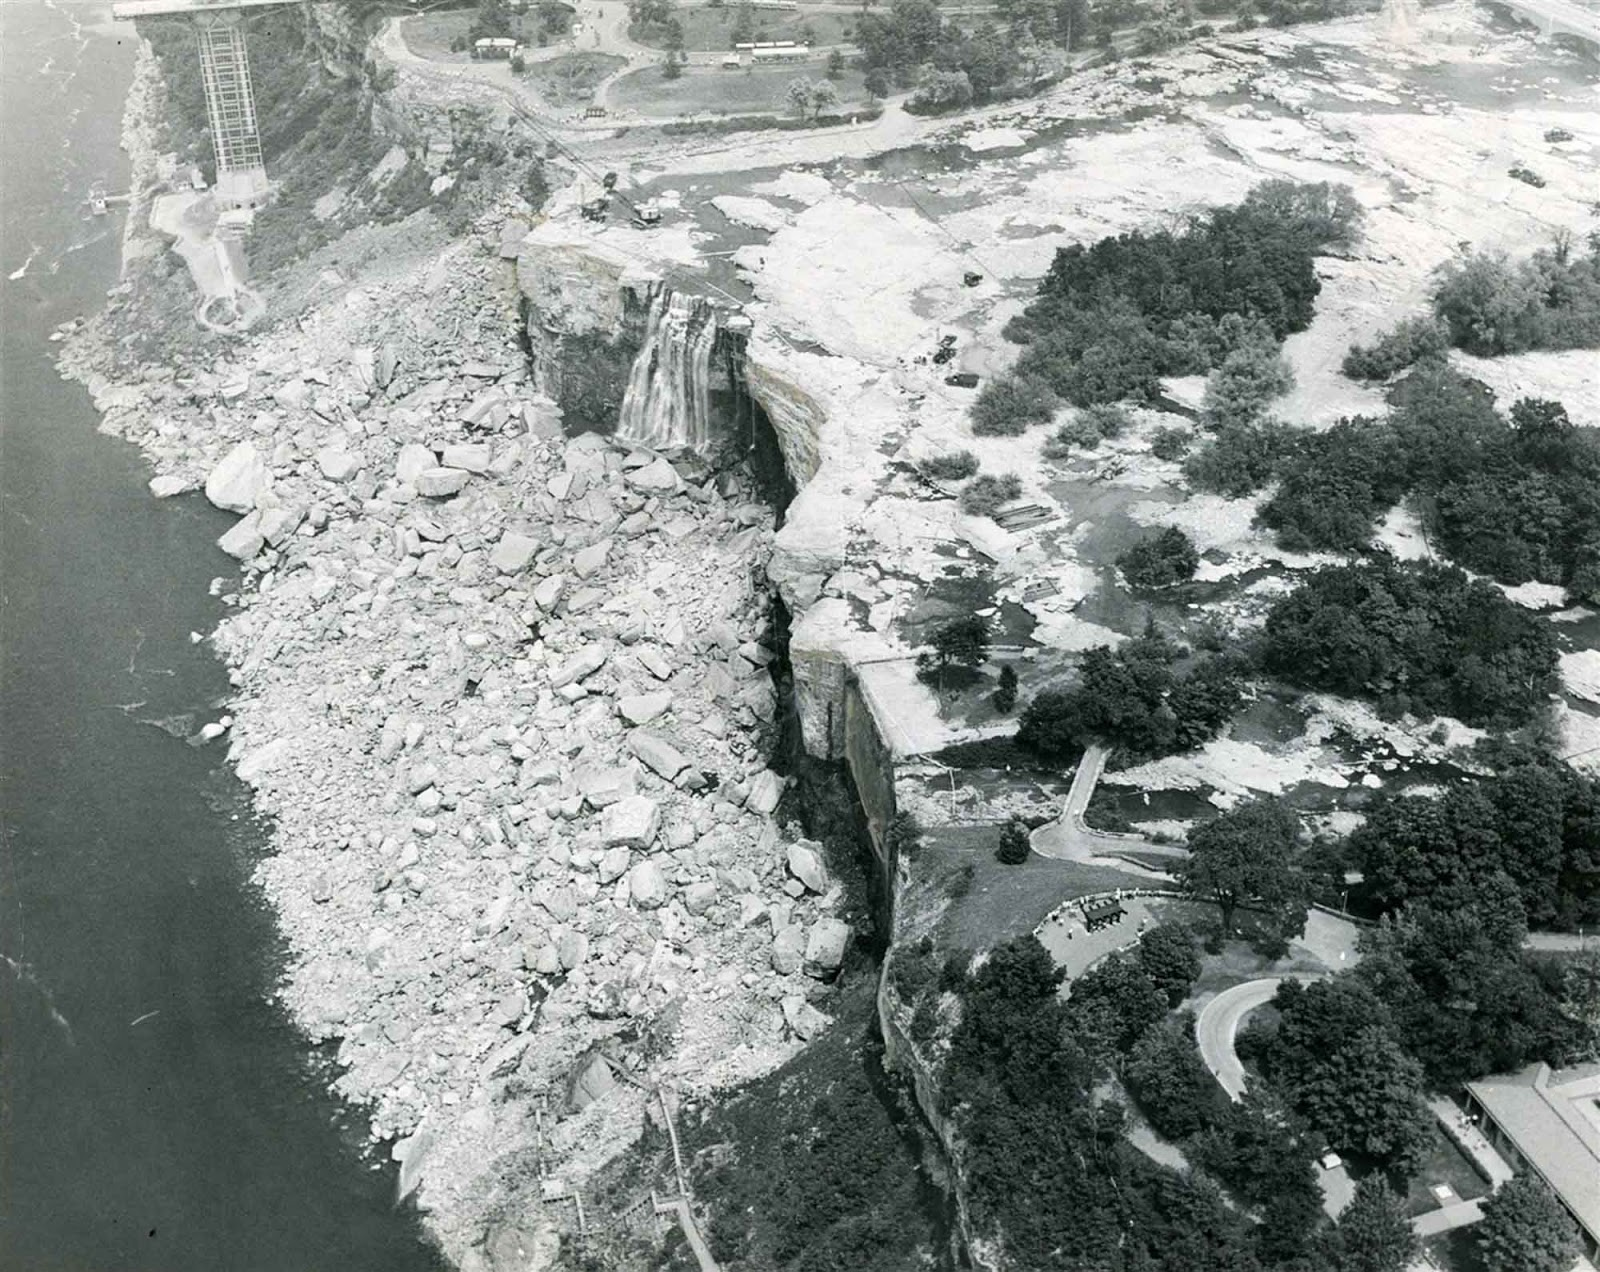 niagara_falls_without_water_1969_5.jpg